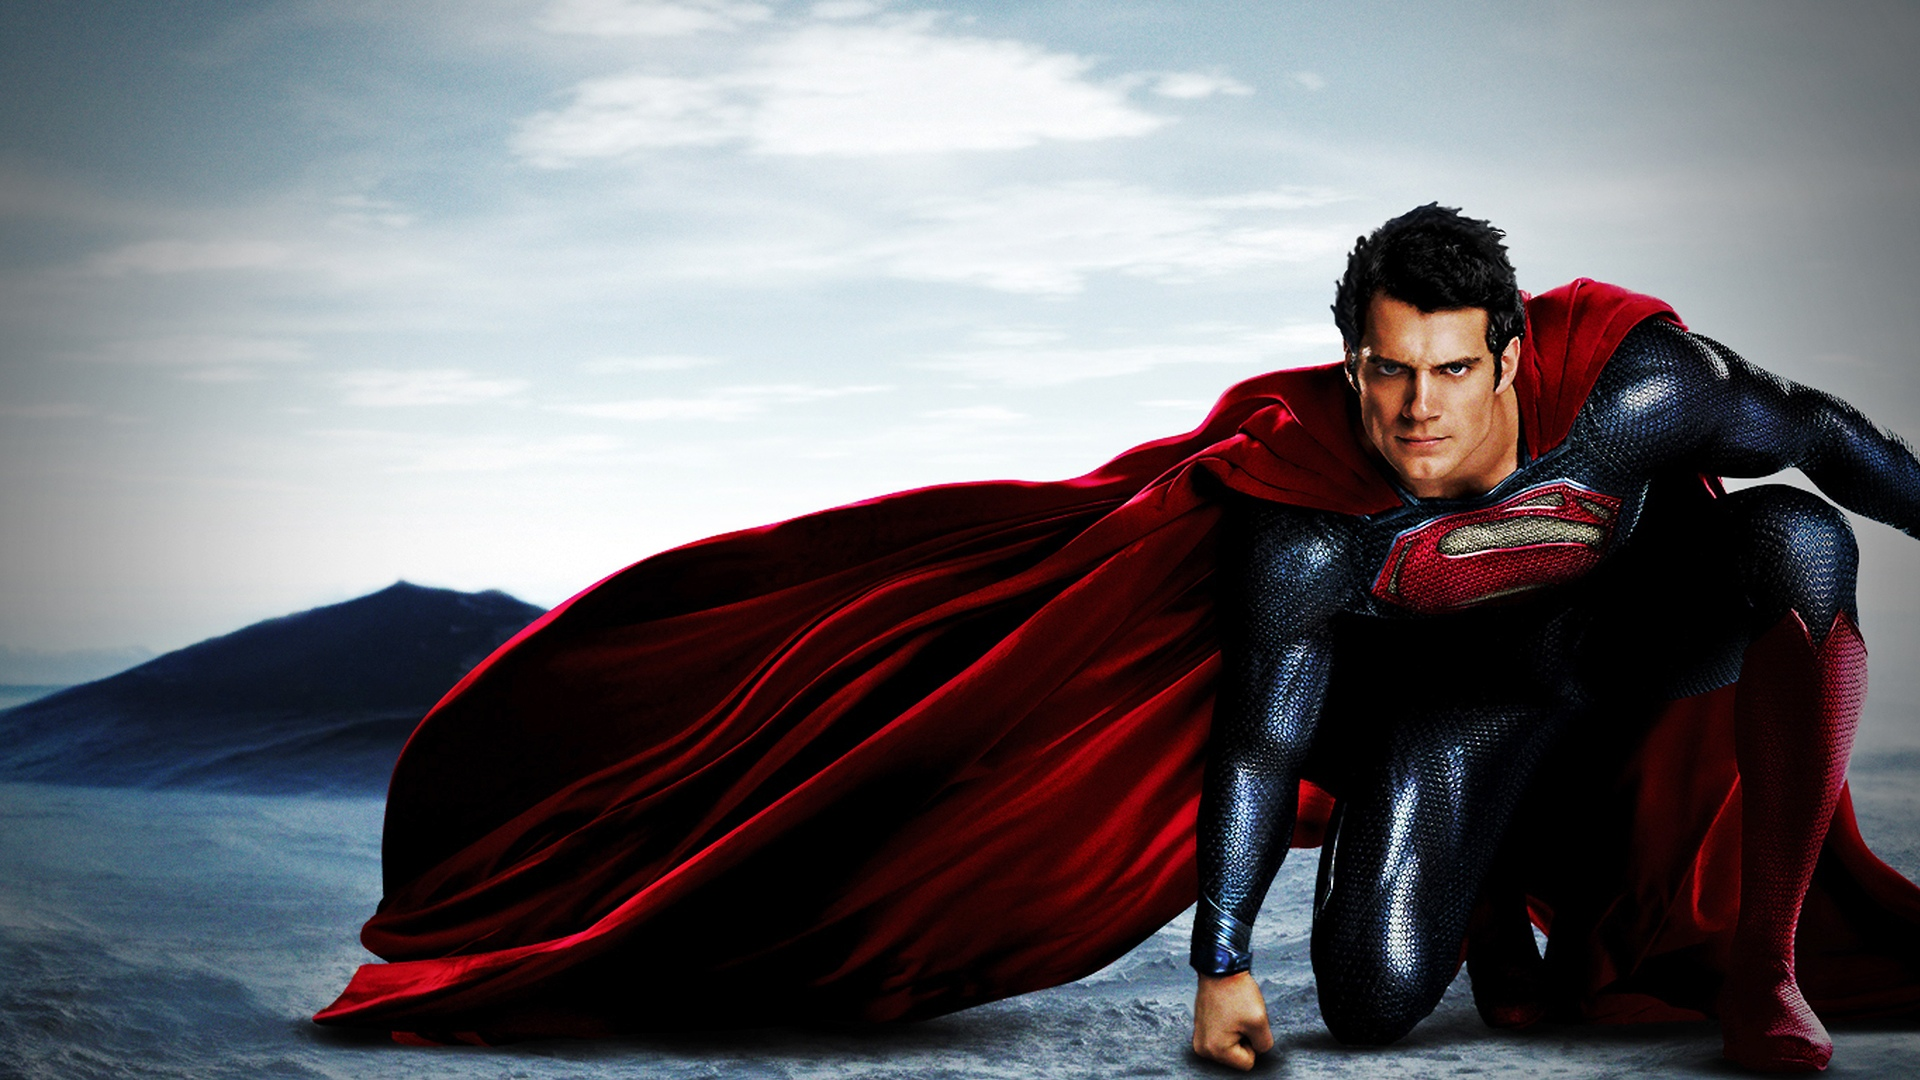 Man Of Steel Wallpapers & images